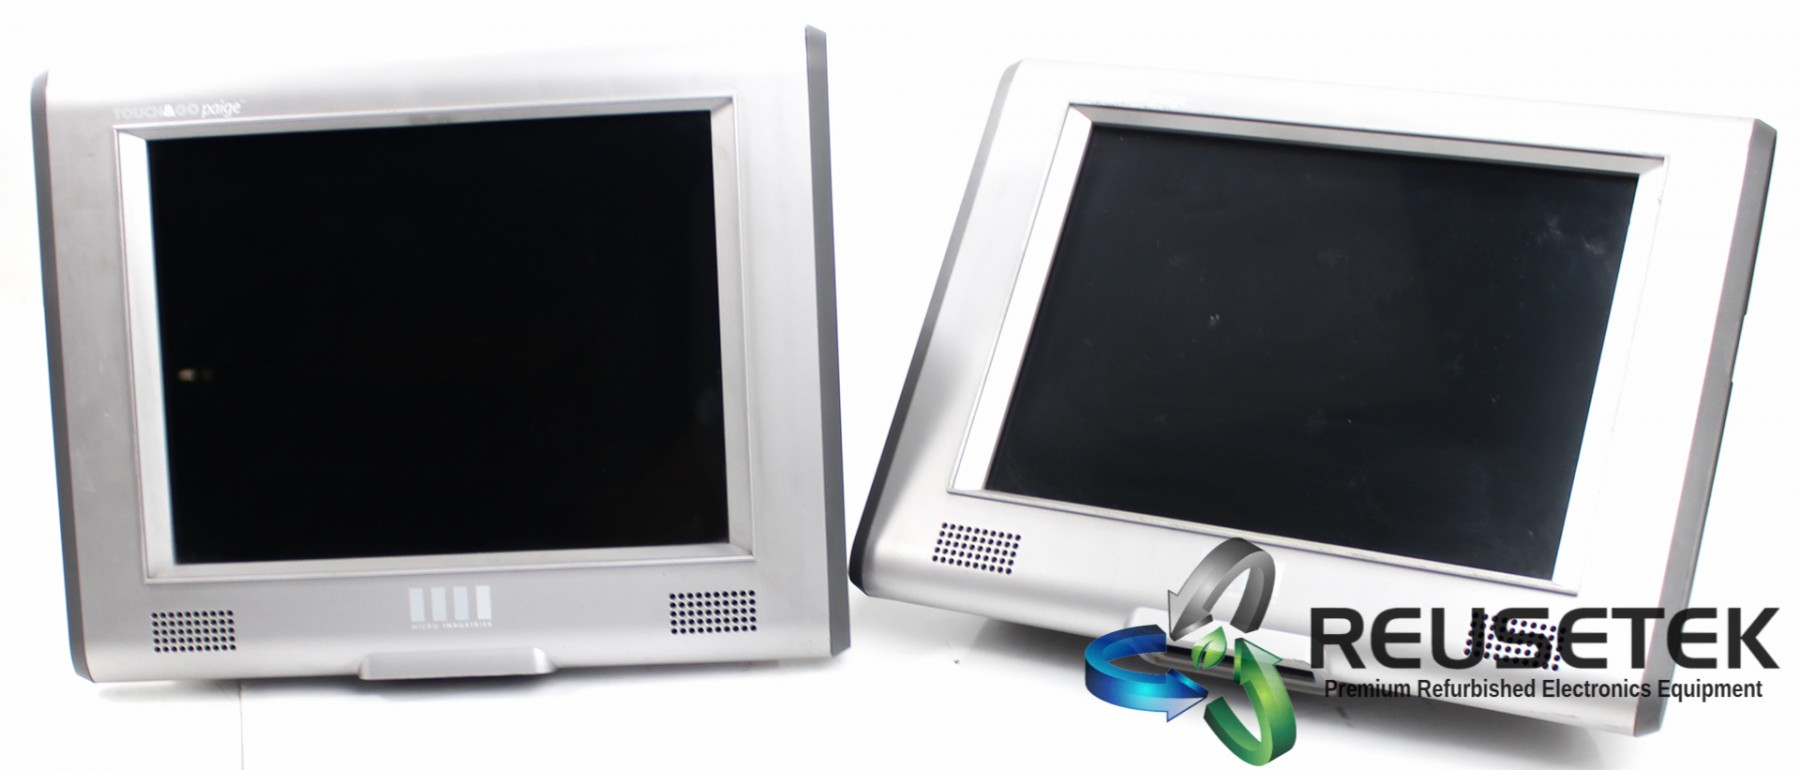 50003176520-Lot of 2 Micro Industries Touch&Go Paige Model 9500143 Interactive Retail Kiosk-image